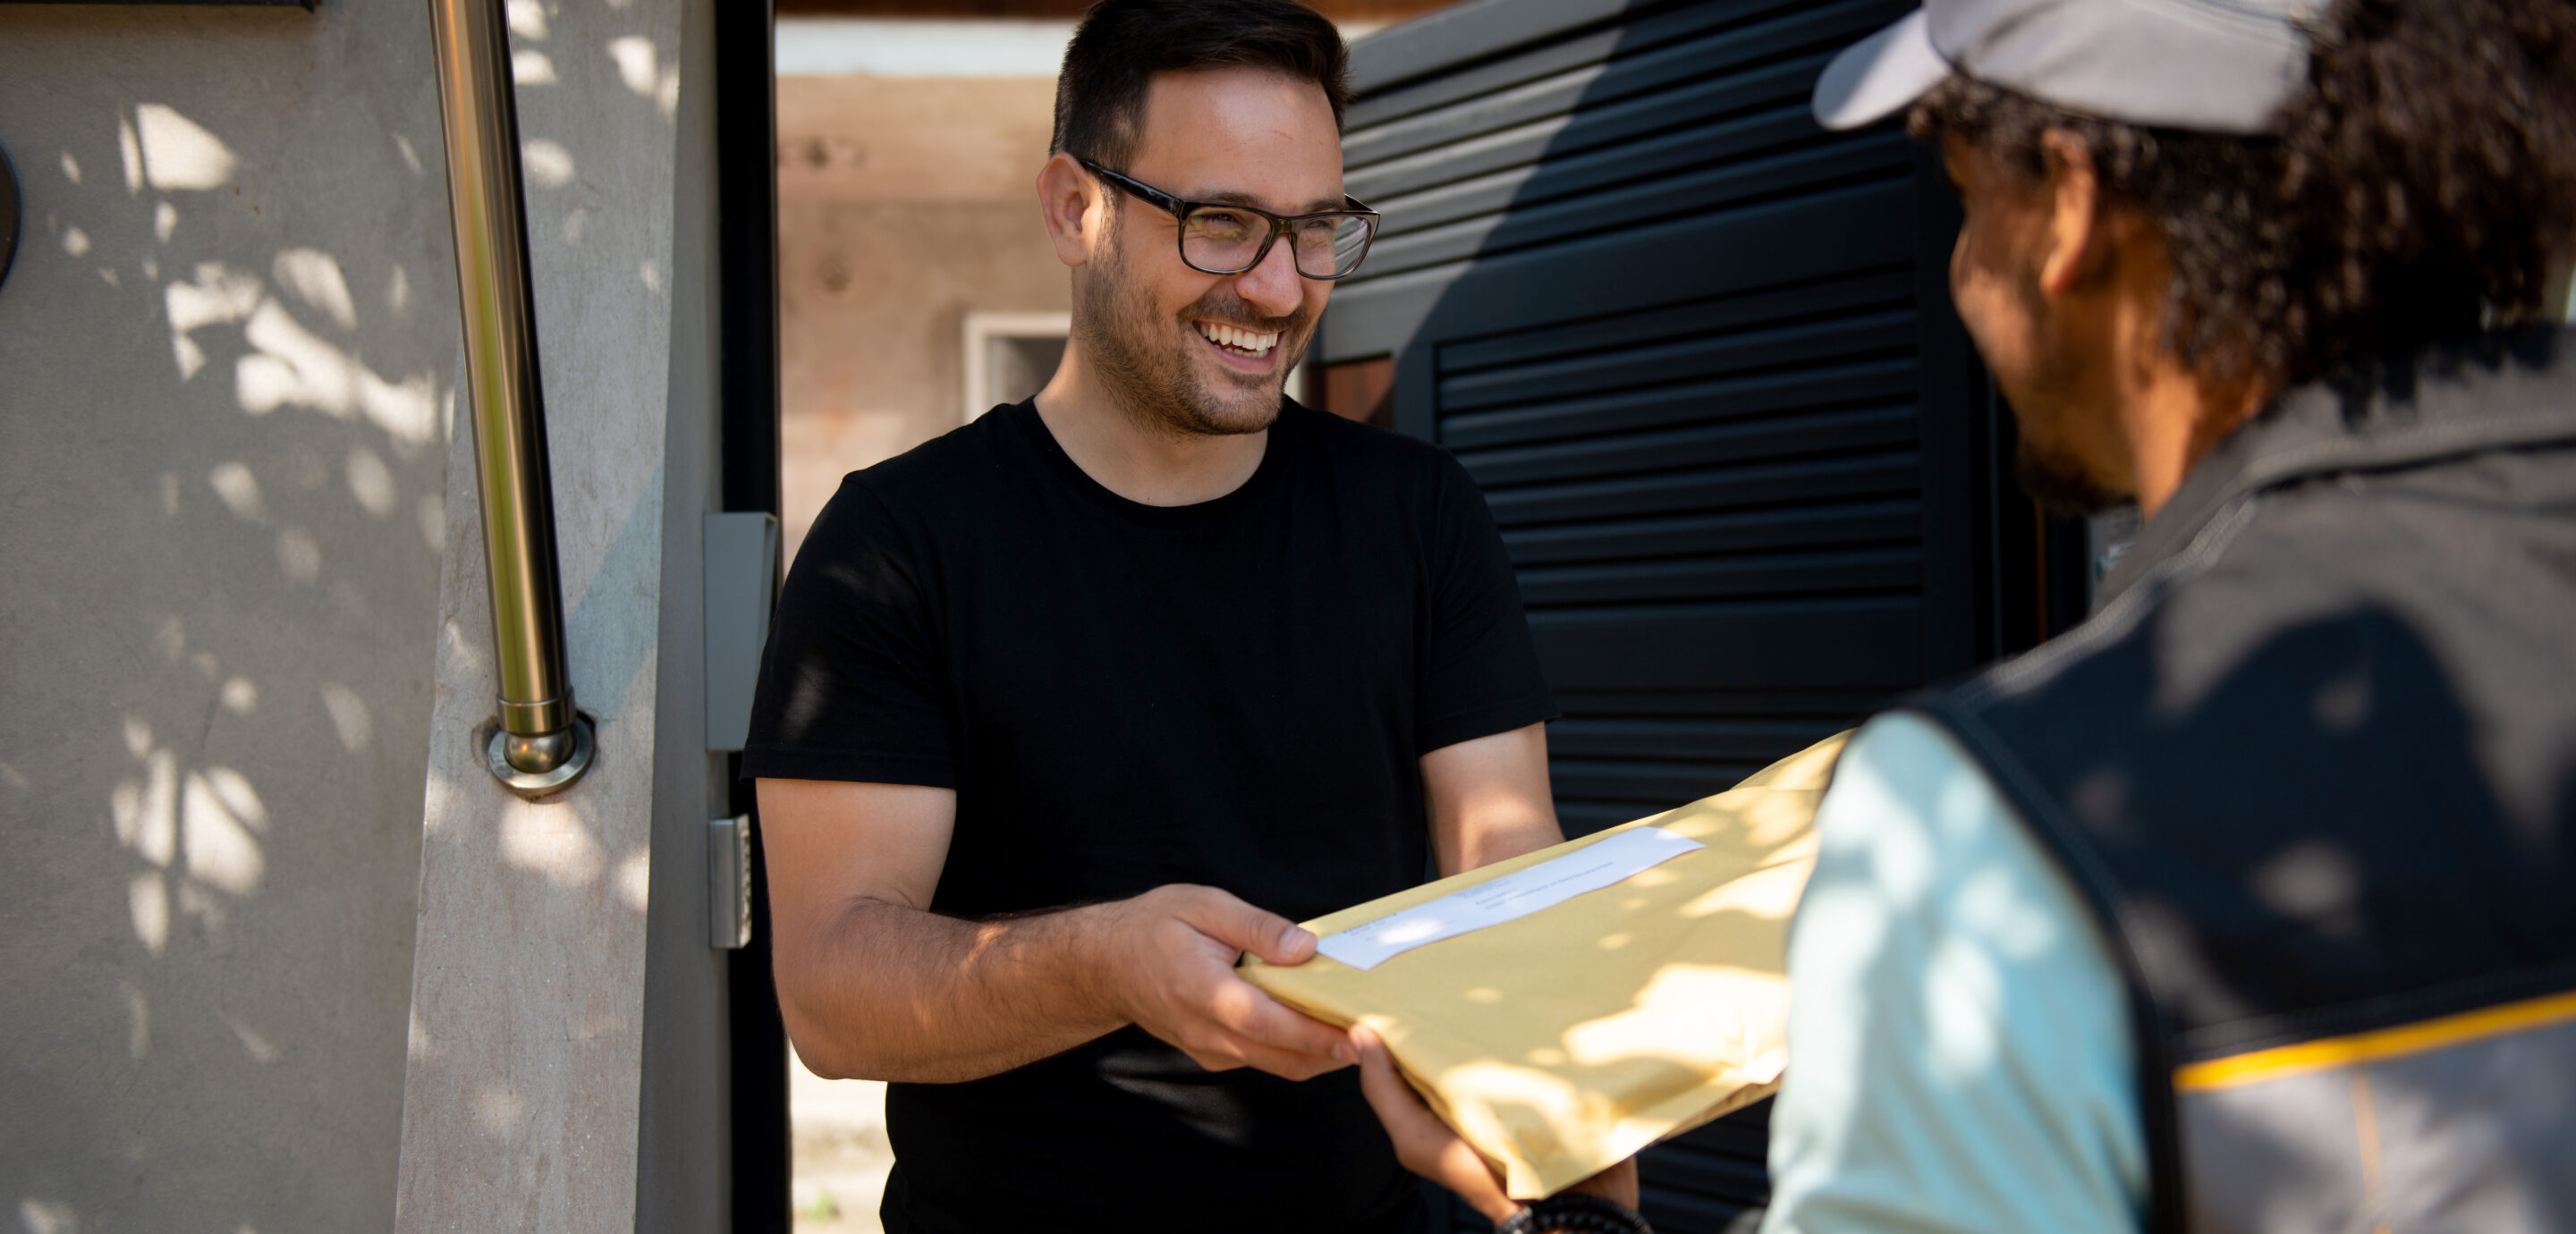 A man receiving a parcel from the mailman